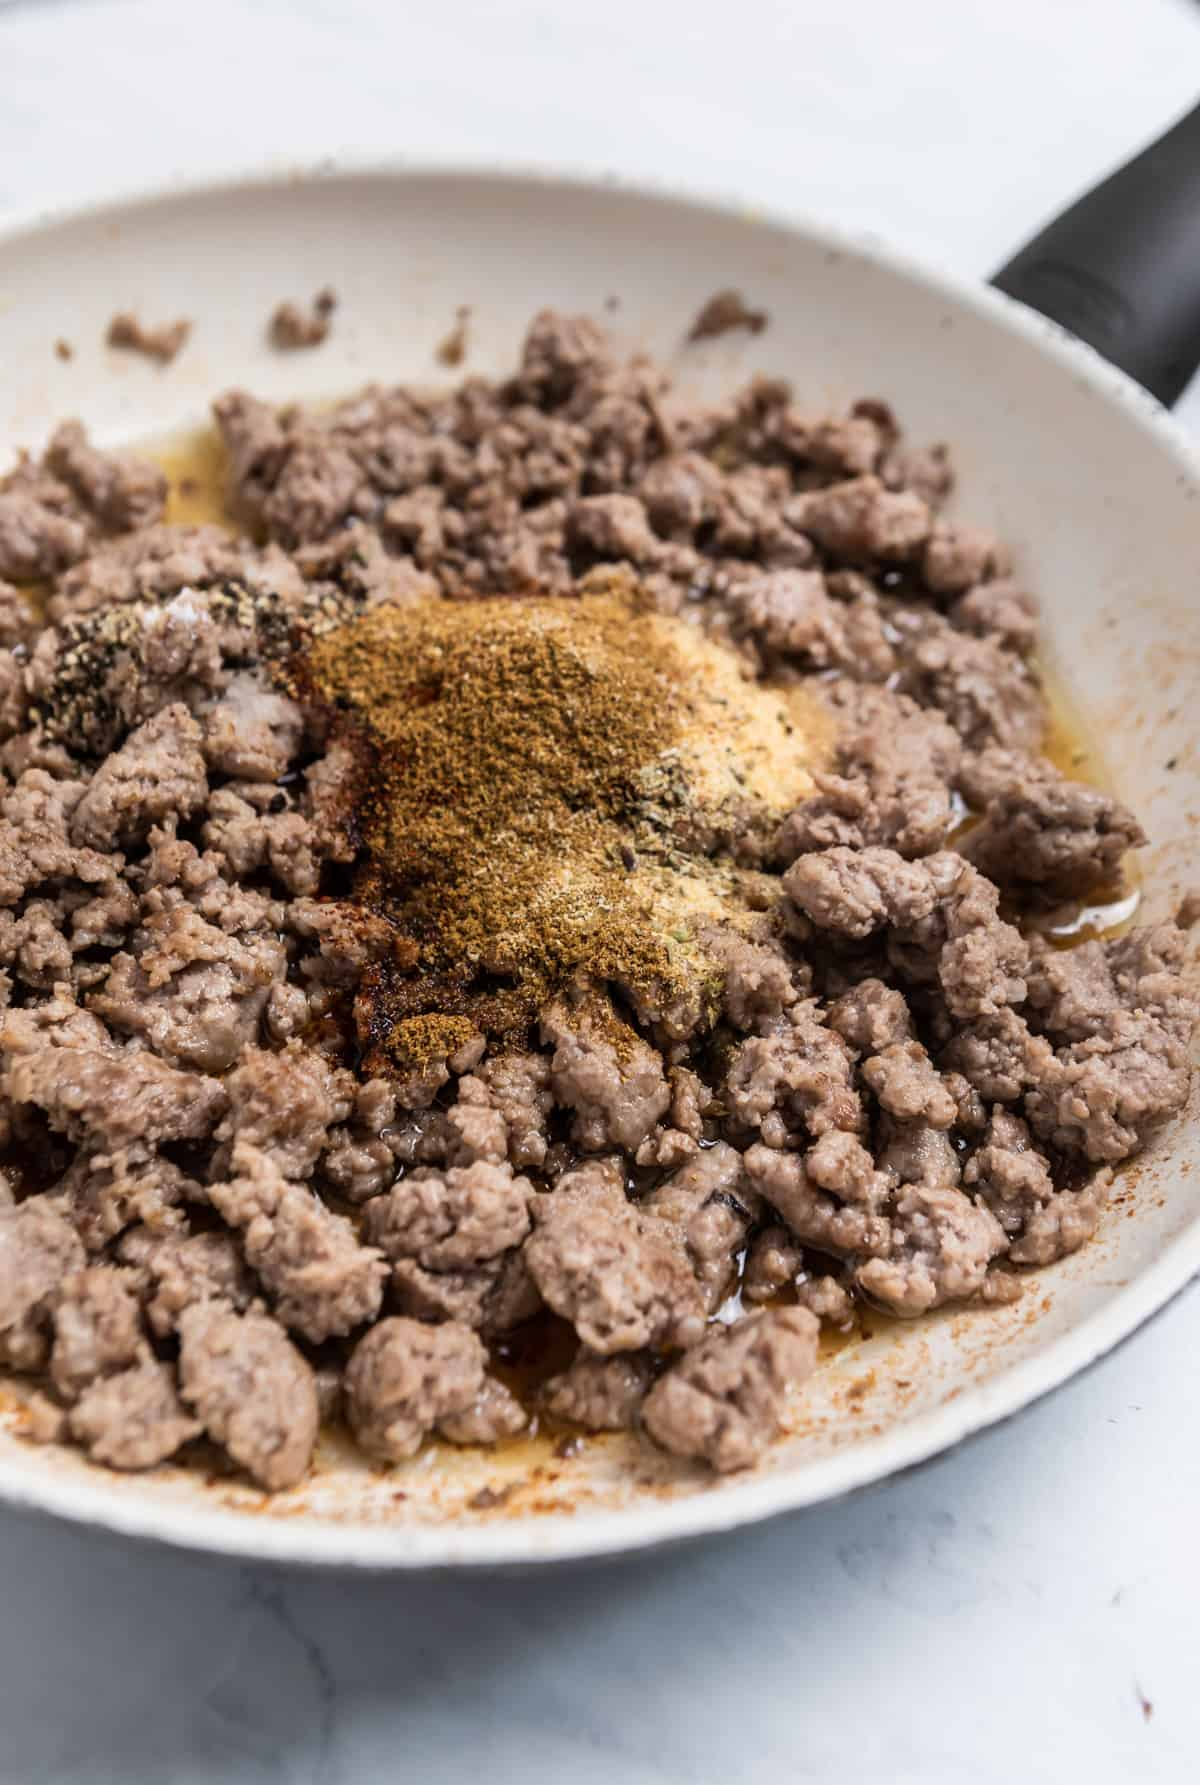 Browned ground pork in skillet with spices over top.